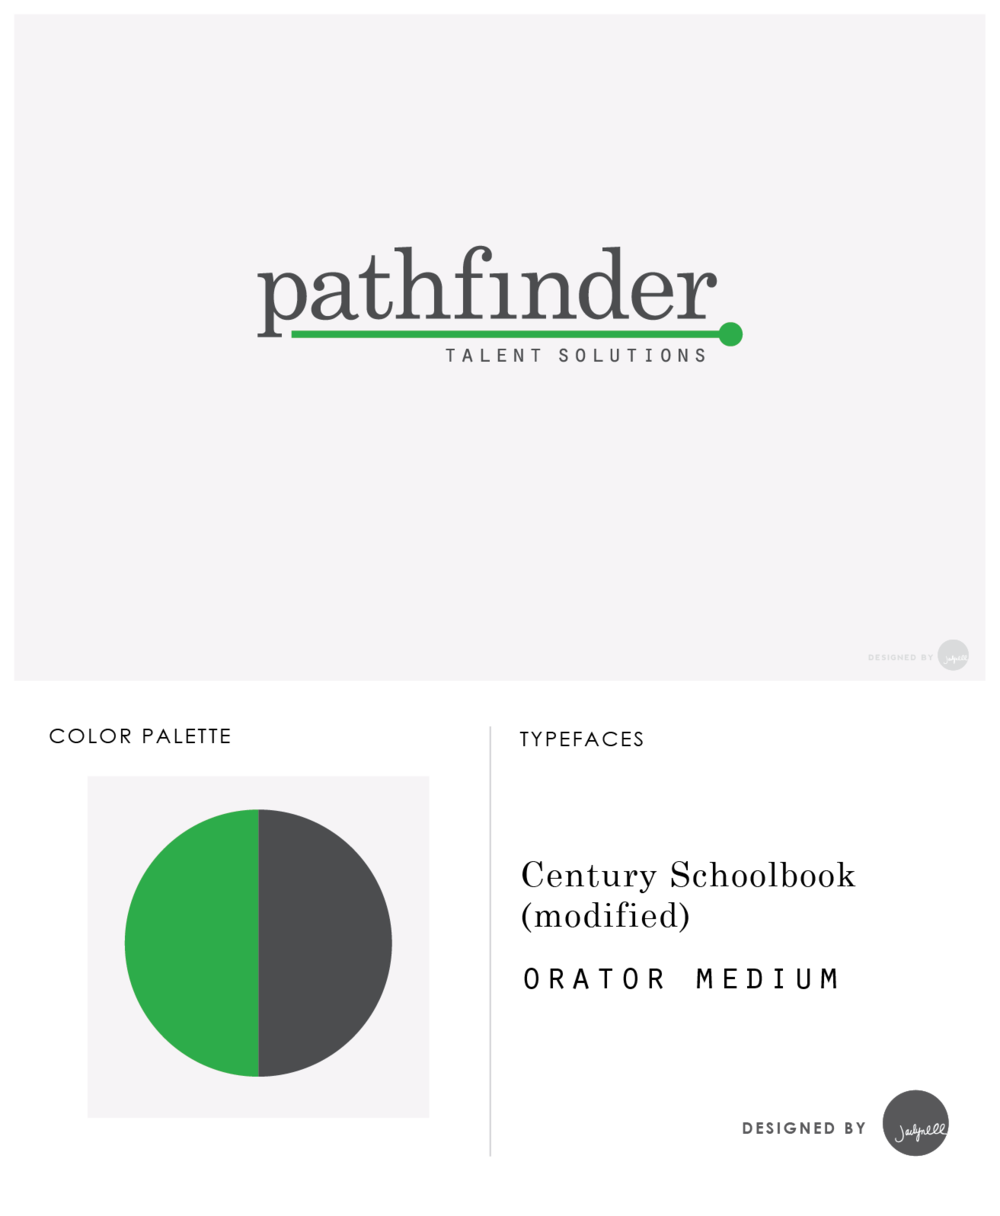 pathfinder_styleguide-01.png